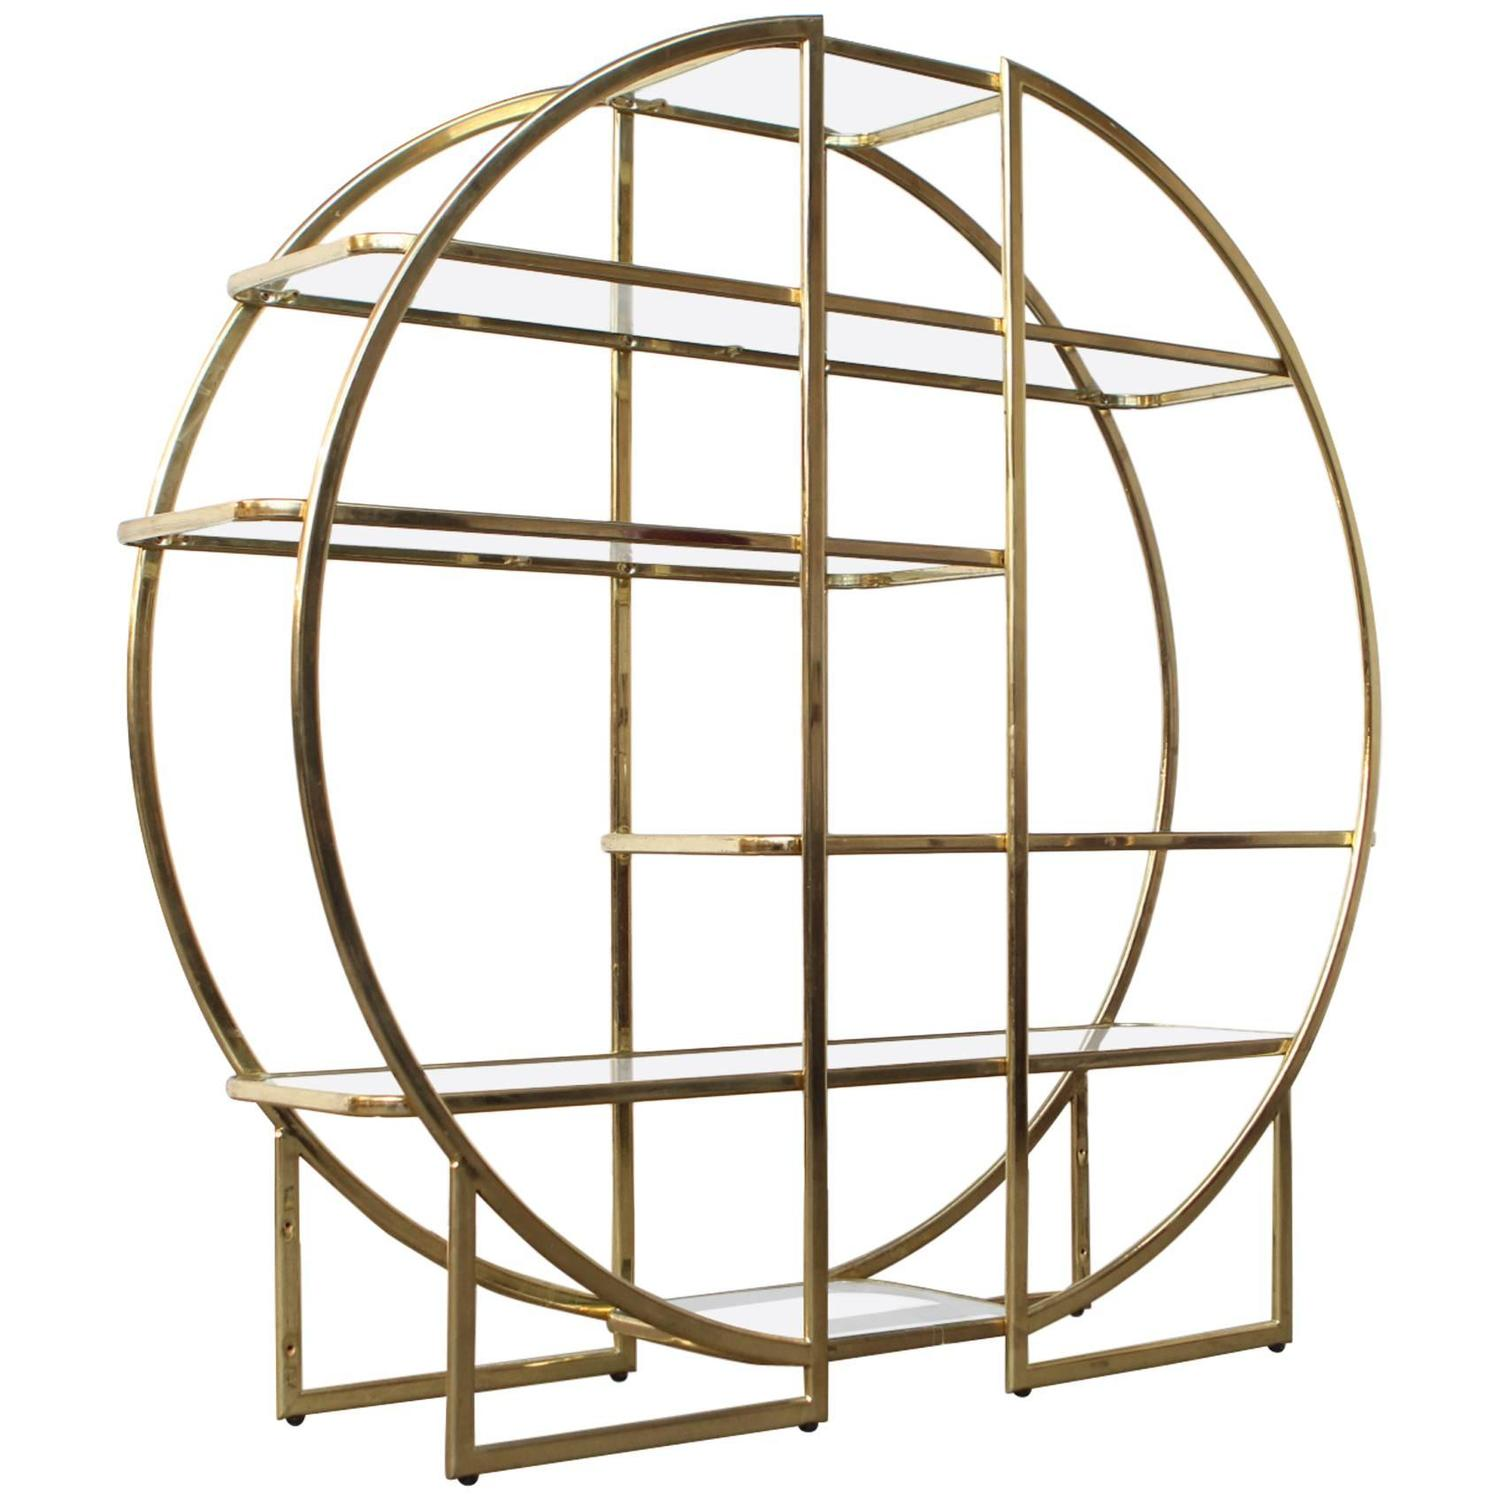 circular brass etagere with glass display shelves for sale at 1stdibs. Black Bedroom Furniture Sets. Home Design Ideas